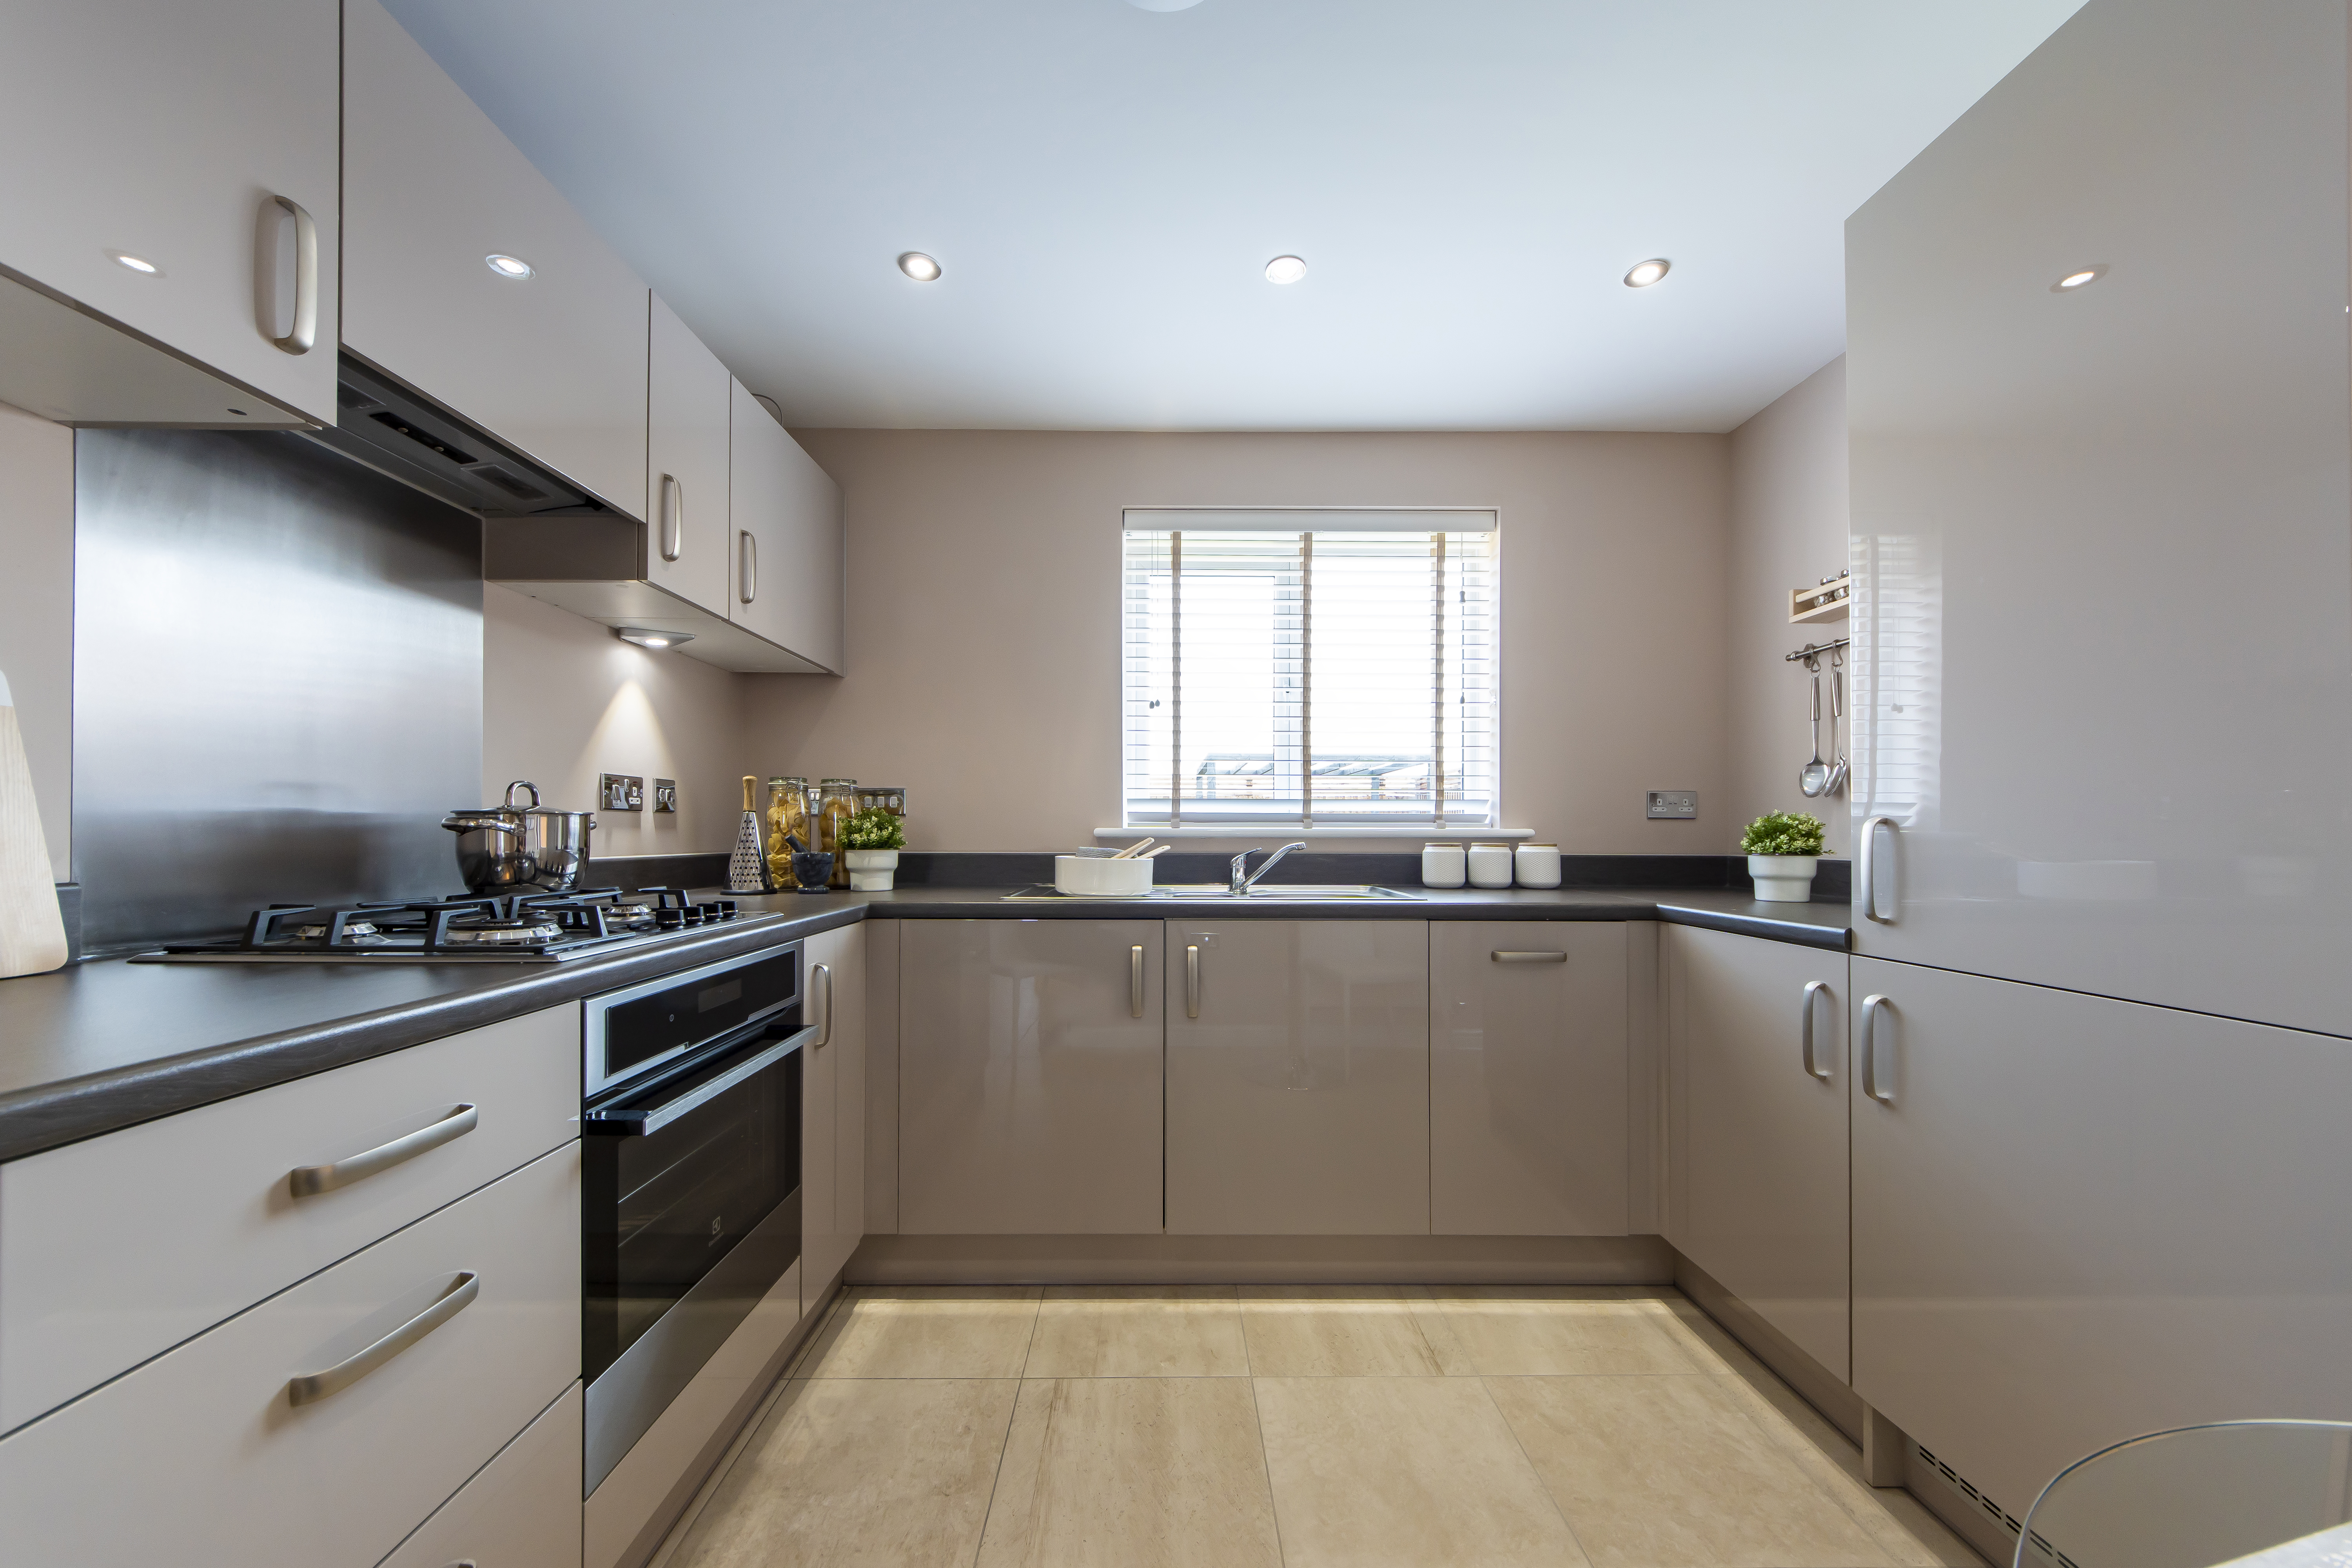 Aldenham-3bedroom-showhome_08